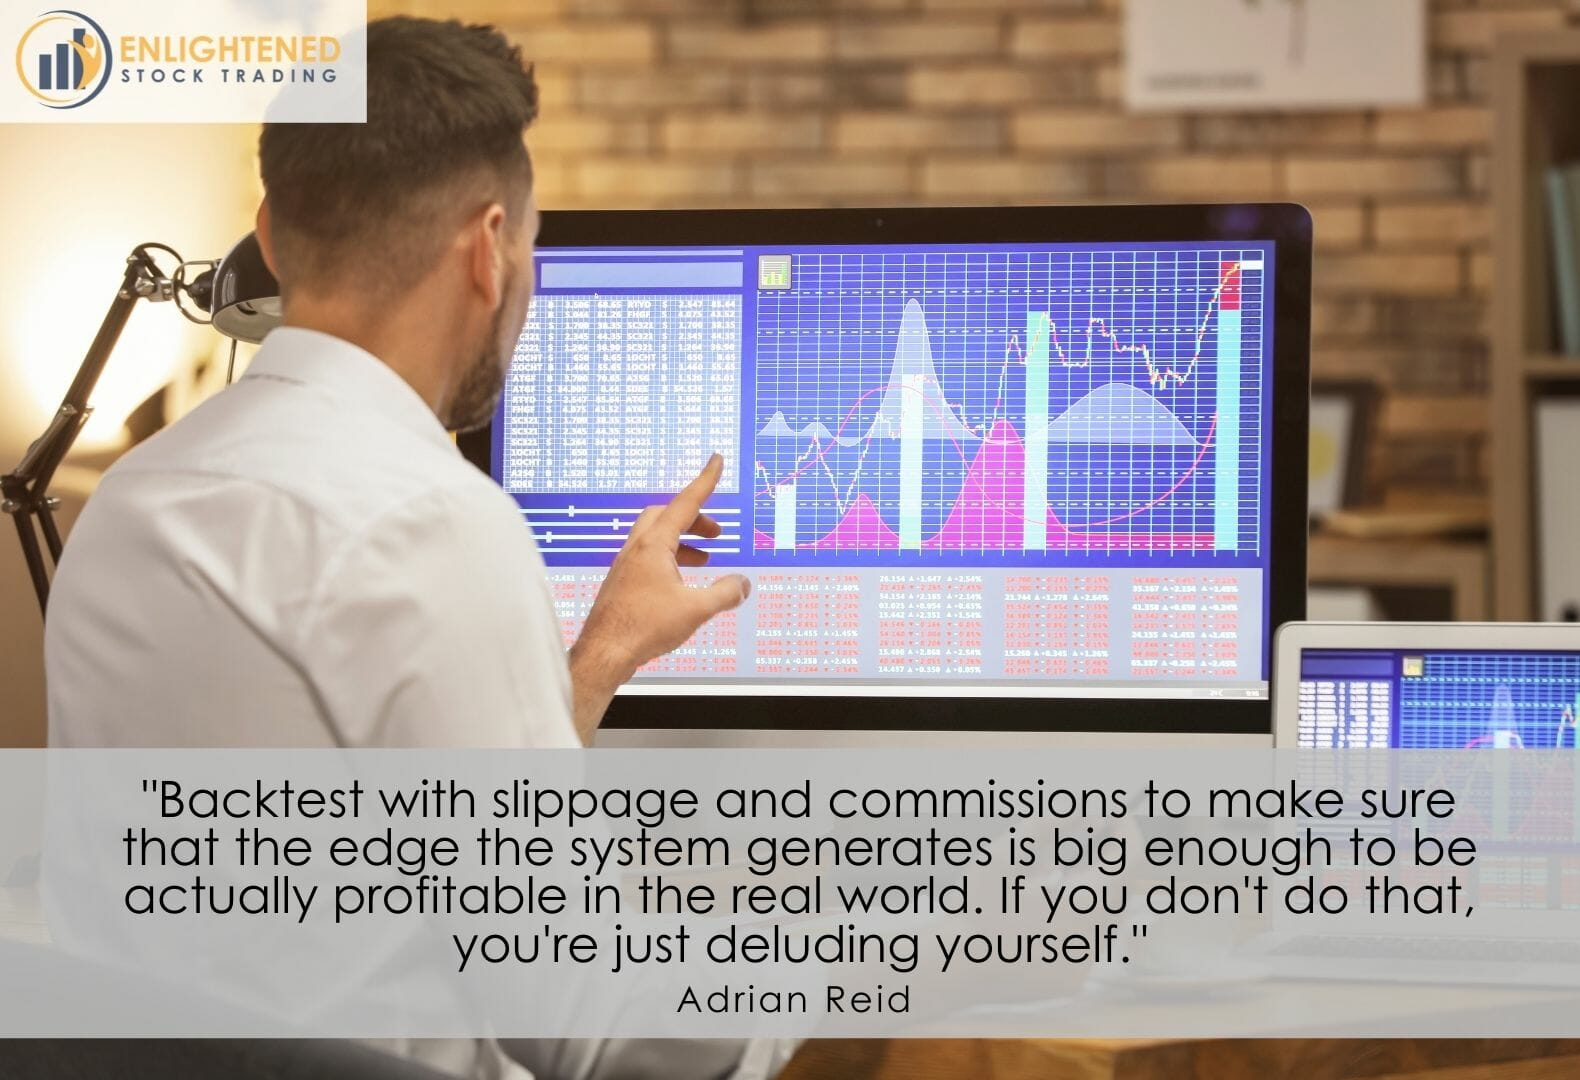 Backtest your trading system with slippage and commission to ensure the edge is big enough to profit